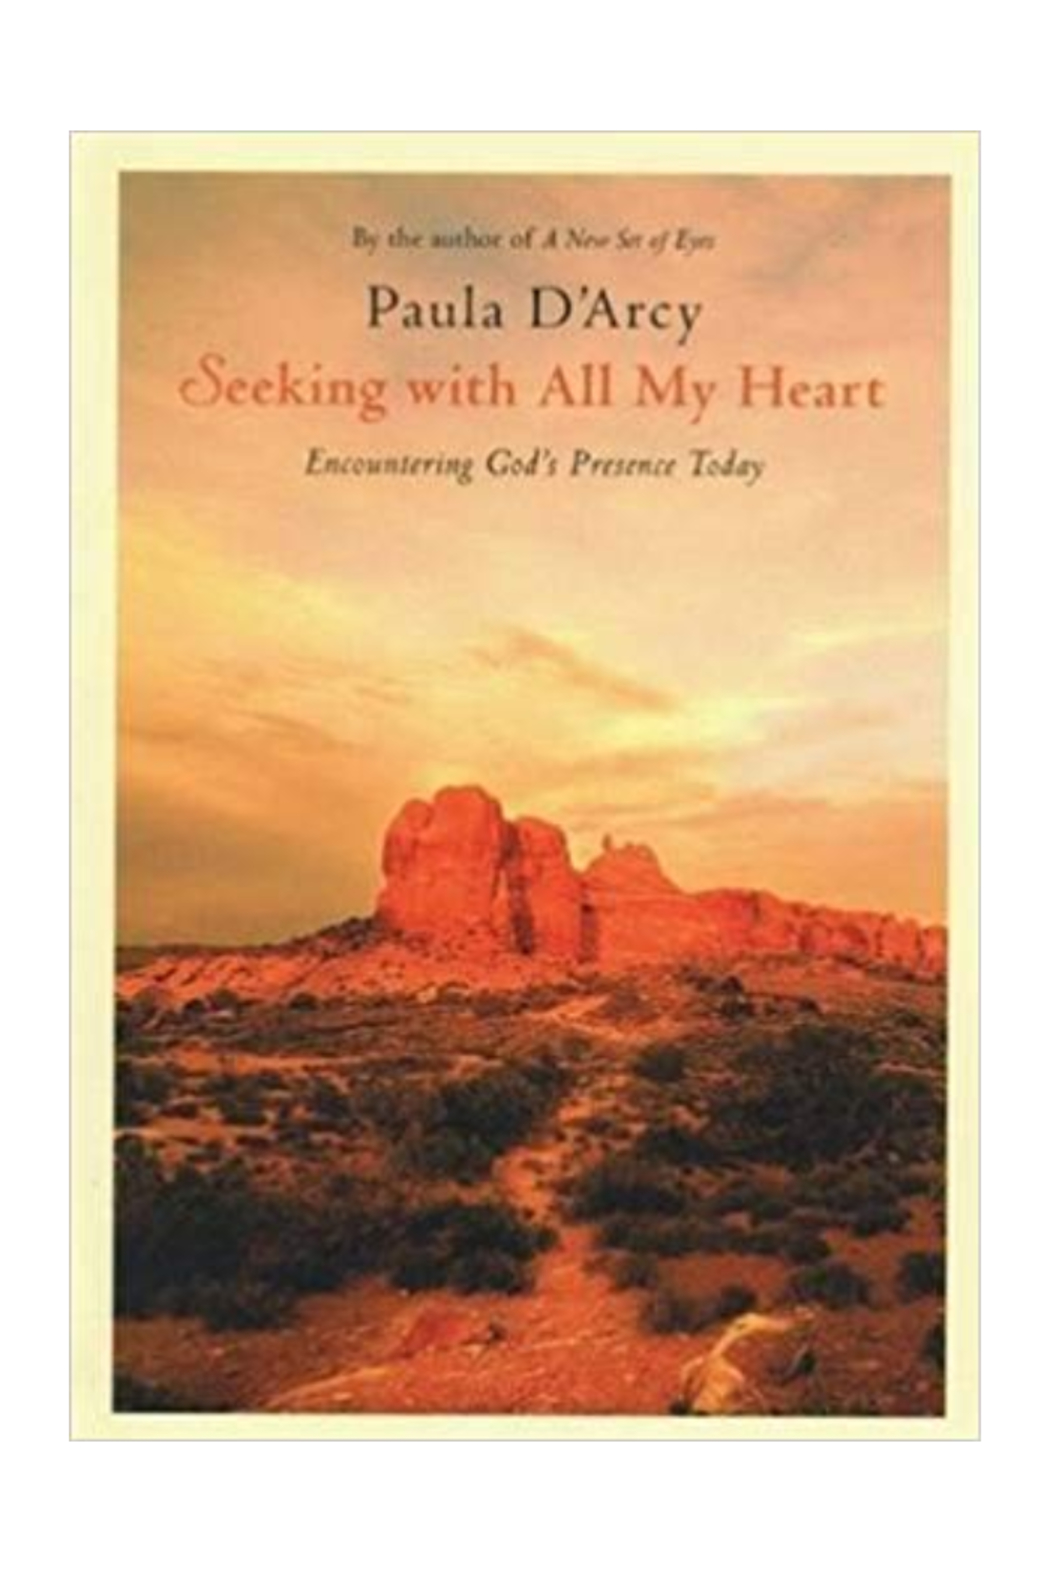 Crossroads SEEKING WITH ALL MY HEART BY PAULA D'ARCY - Main Image